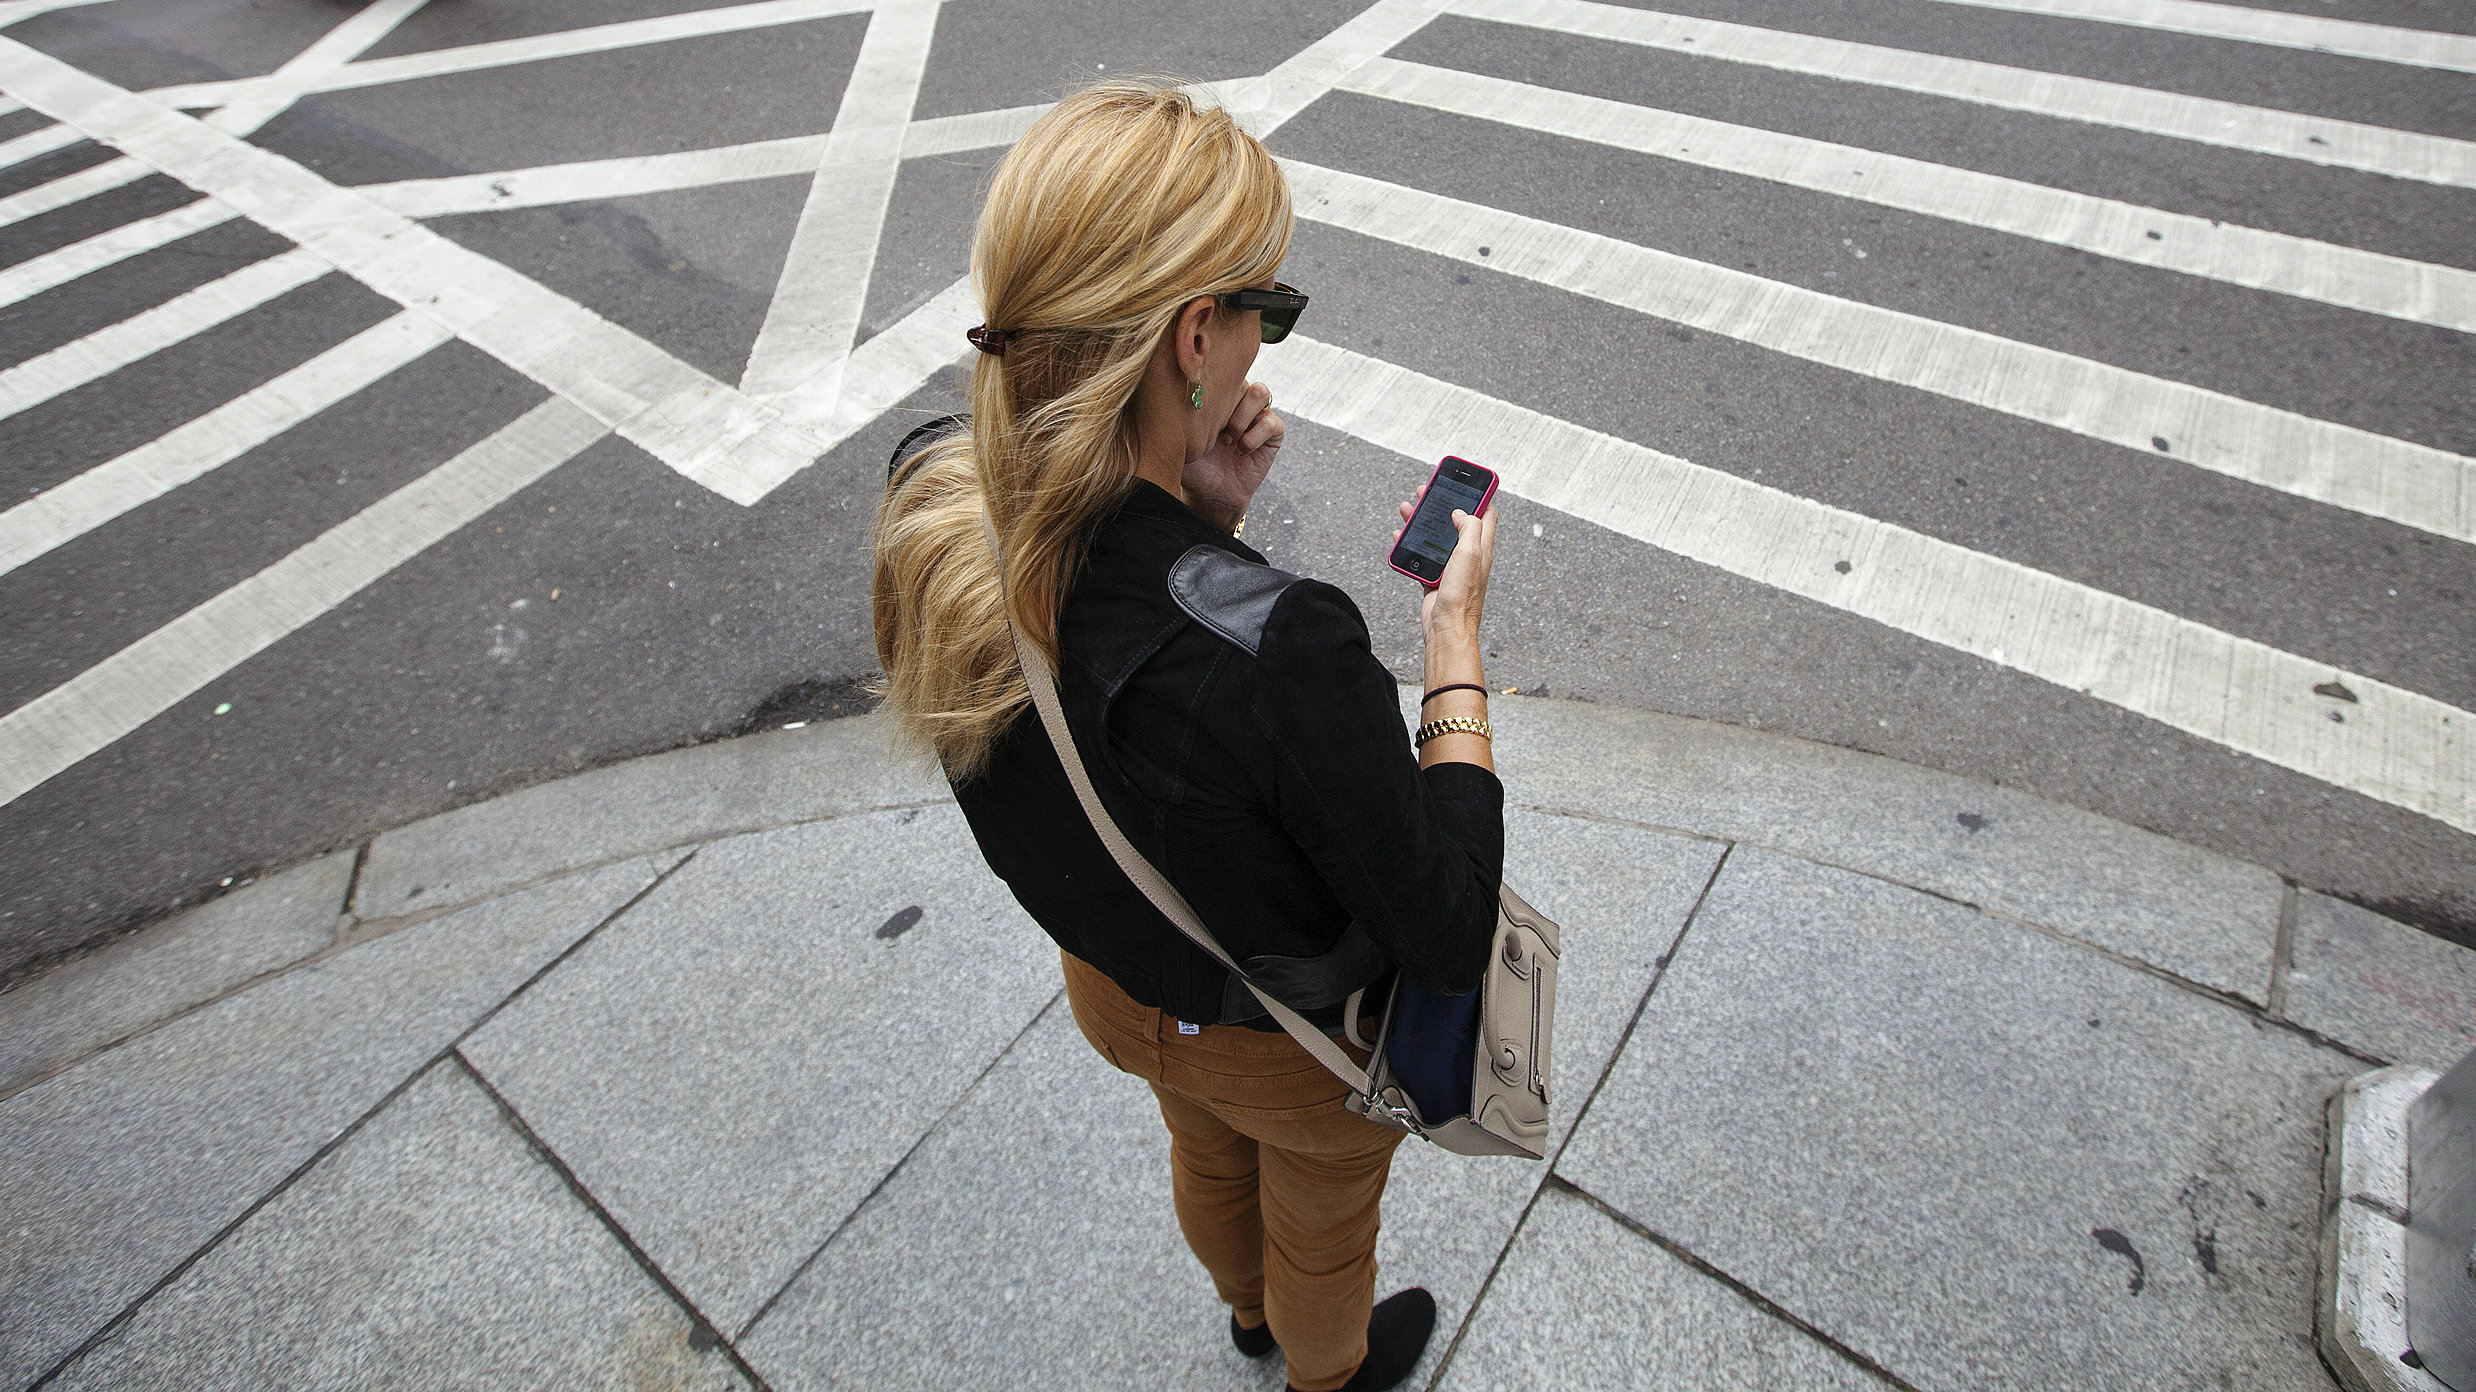 A woman uses her Apple iPhone while waiting to cross 5th Avenue in New York, September 20, 2012. Apple's iPhone 5 goes on sale tomorrow as Apple works to increase it's market share in the mobile phone market. REUTERS/Lucas Jackson (UNITED STATES - Tags: BUSINESS SCIENCE TECHNOLOGY TELECOMS SOCIETY)